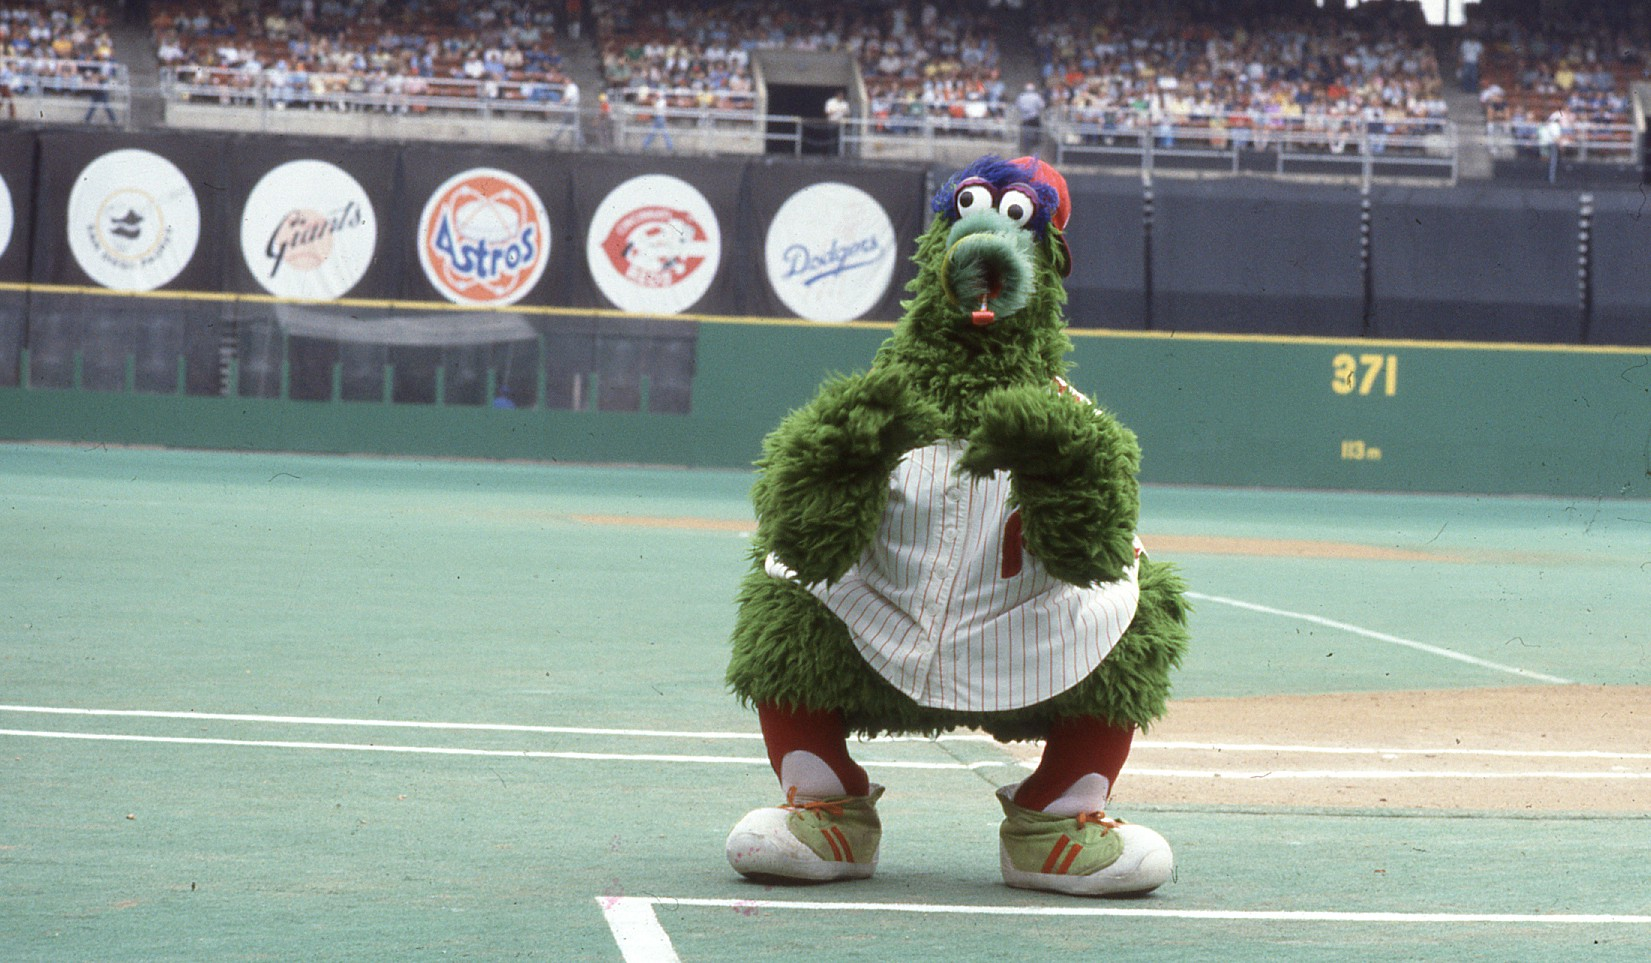 The Phillie Phanatic Is Embroiled In A Messy Lawsuit That Could Change Him Forever